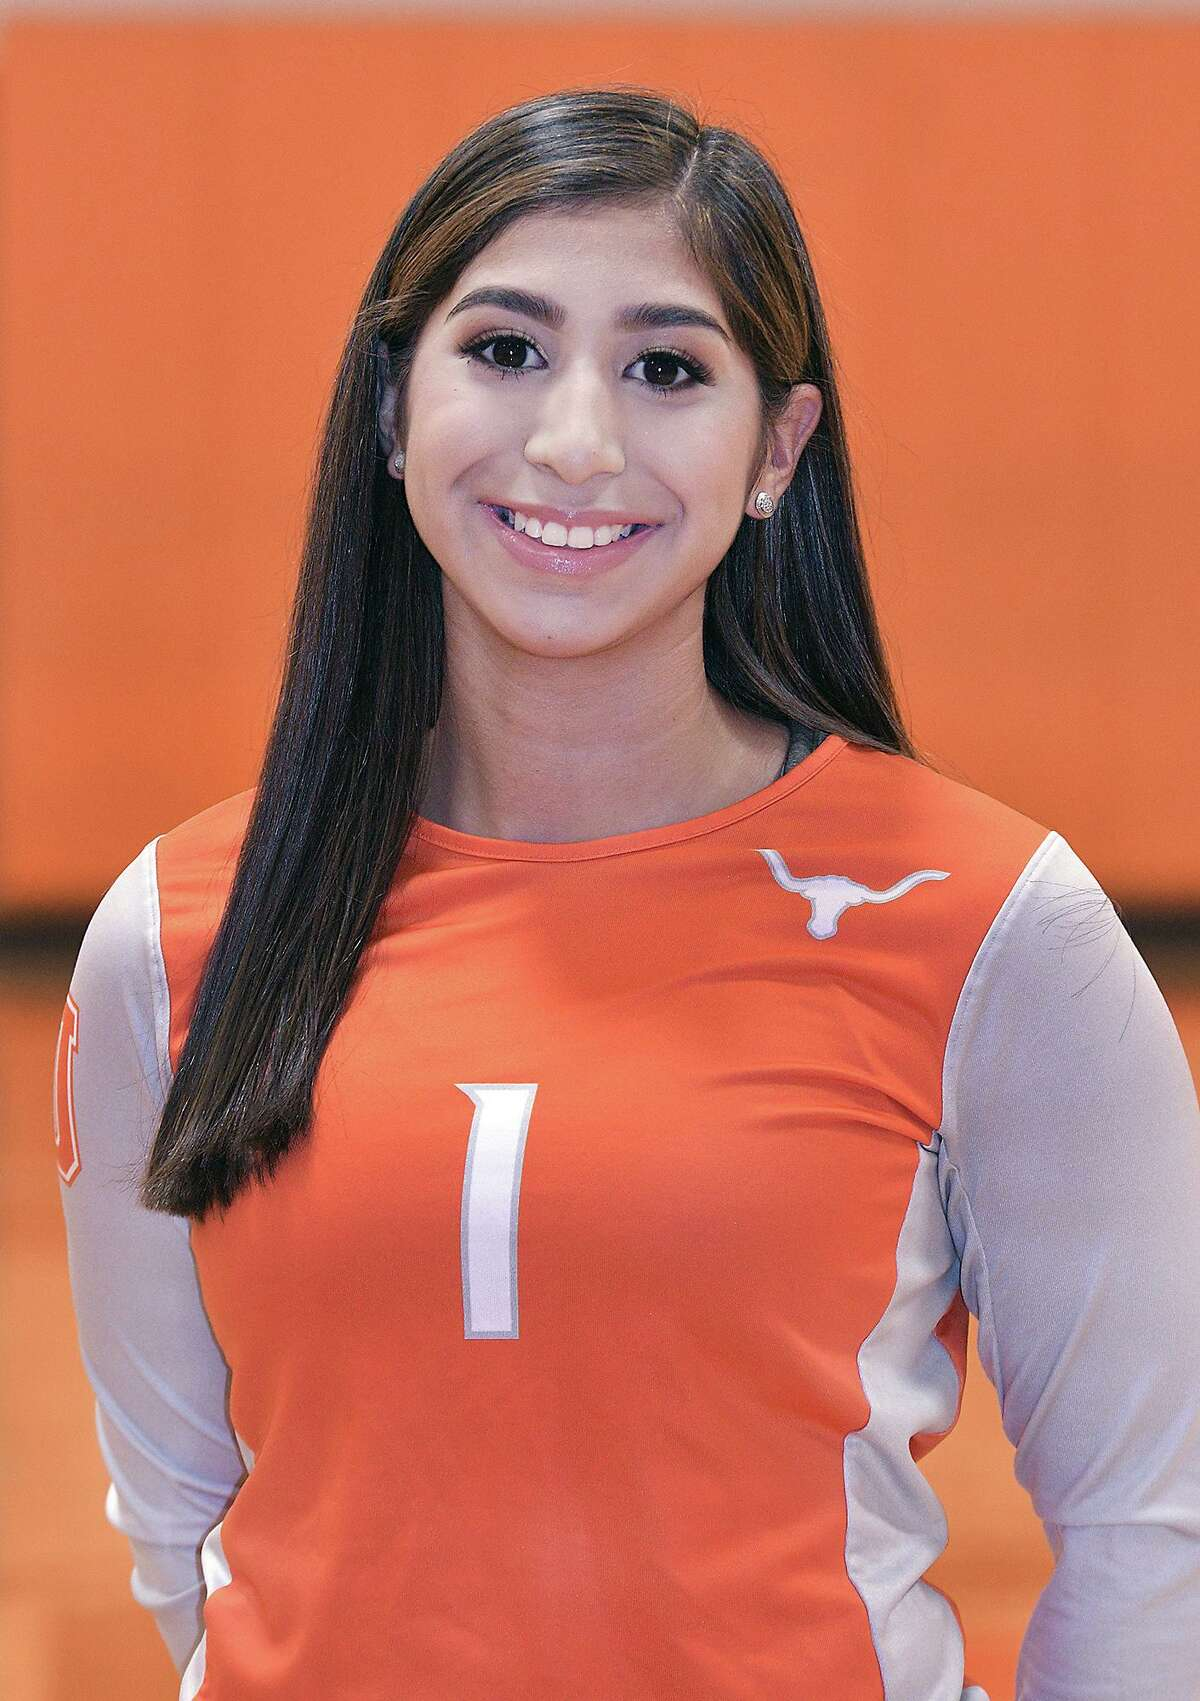 Anakaren Chavez will make her second start at setter for the Lady Longhorns Saturday as they look to continue on their playoff run.